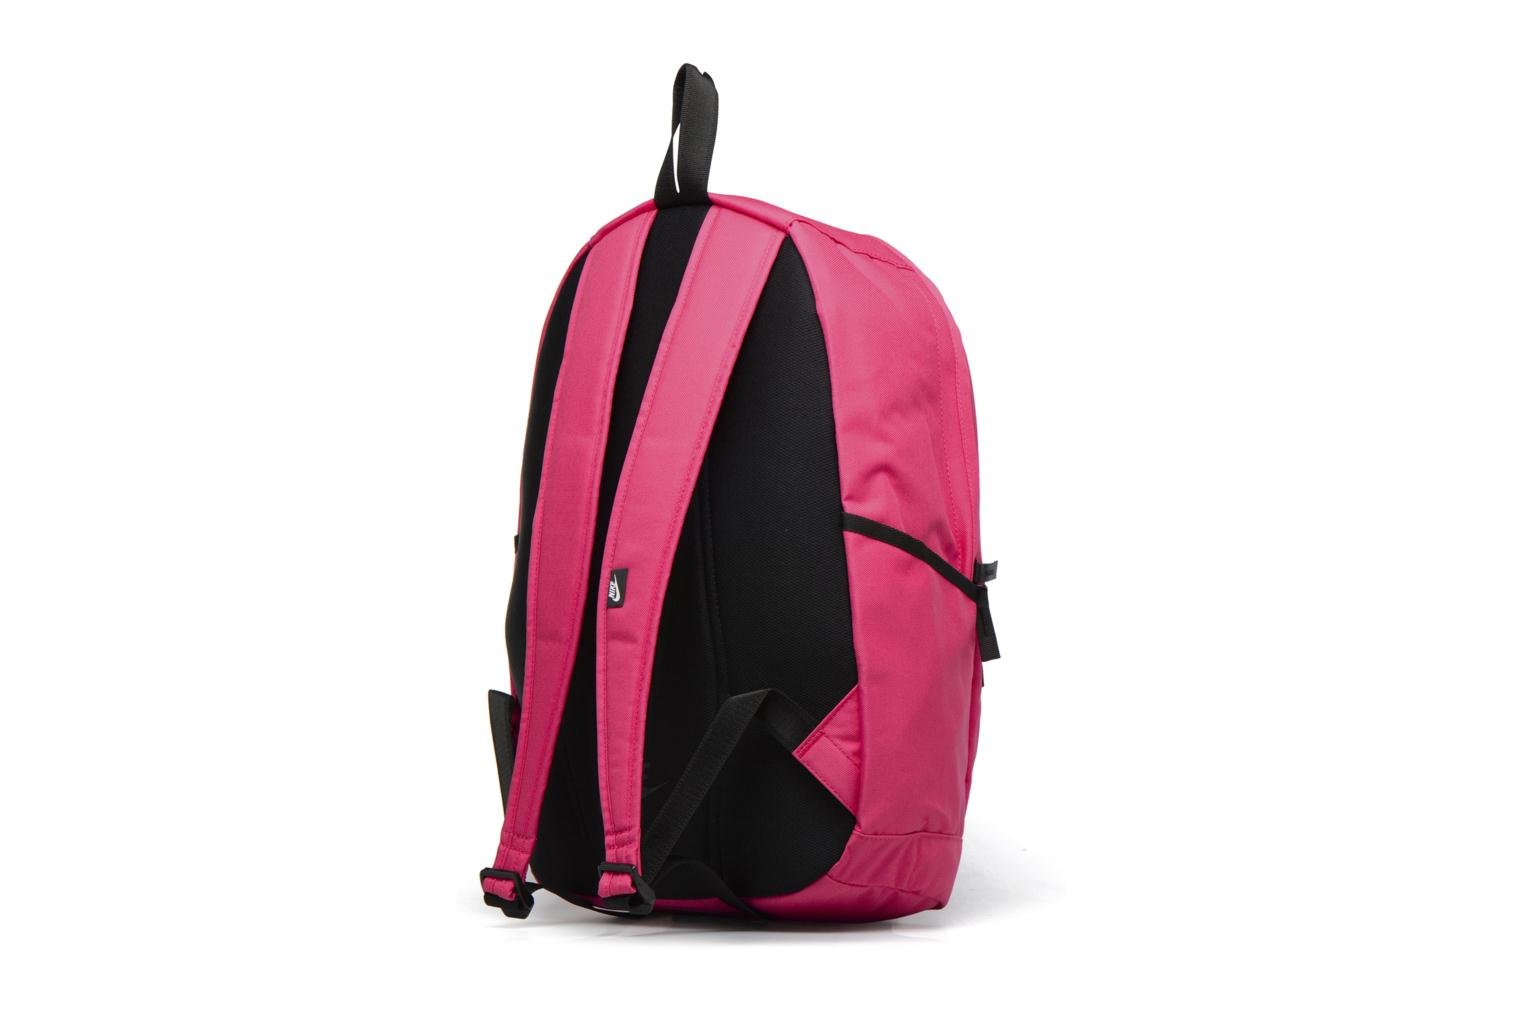 Nike Soleday Backpack Pink/Black/White